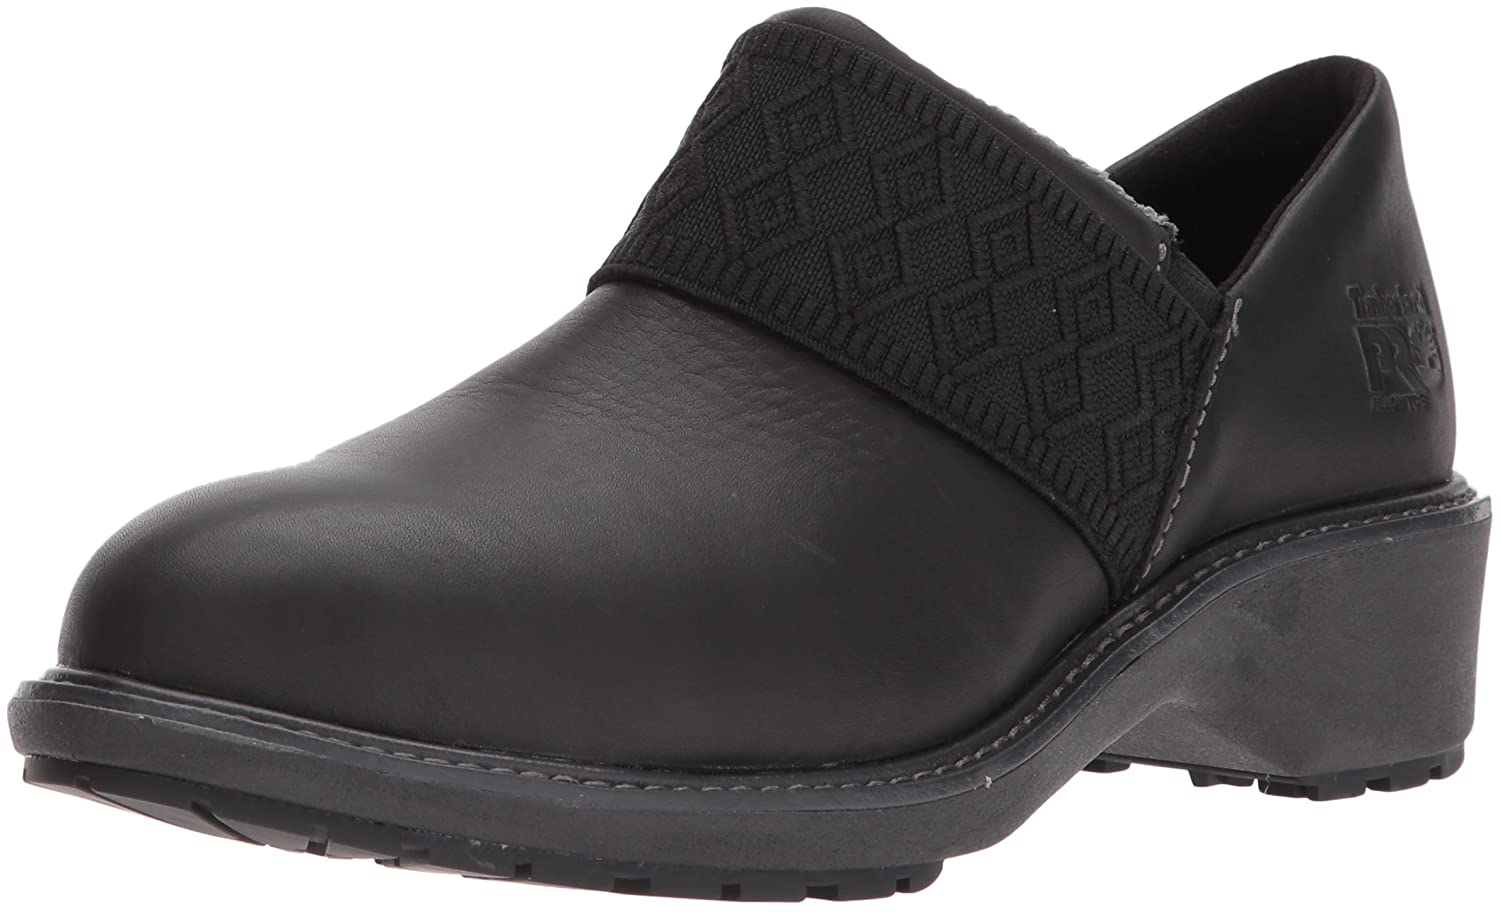 Timberland PRO Women's Riveter Alloy Toe SD+ Industrial & Construction Shoe Riveter Alloy Toe SD+-W